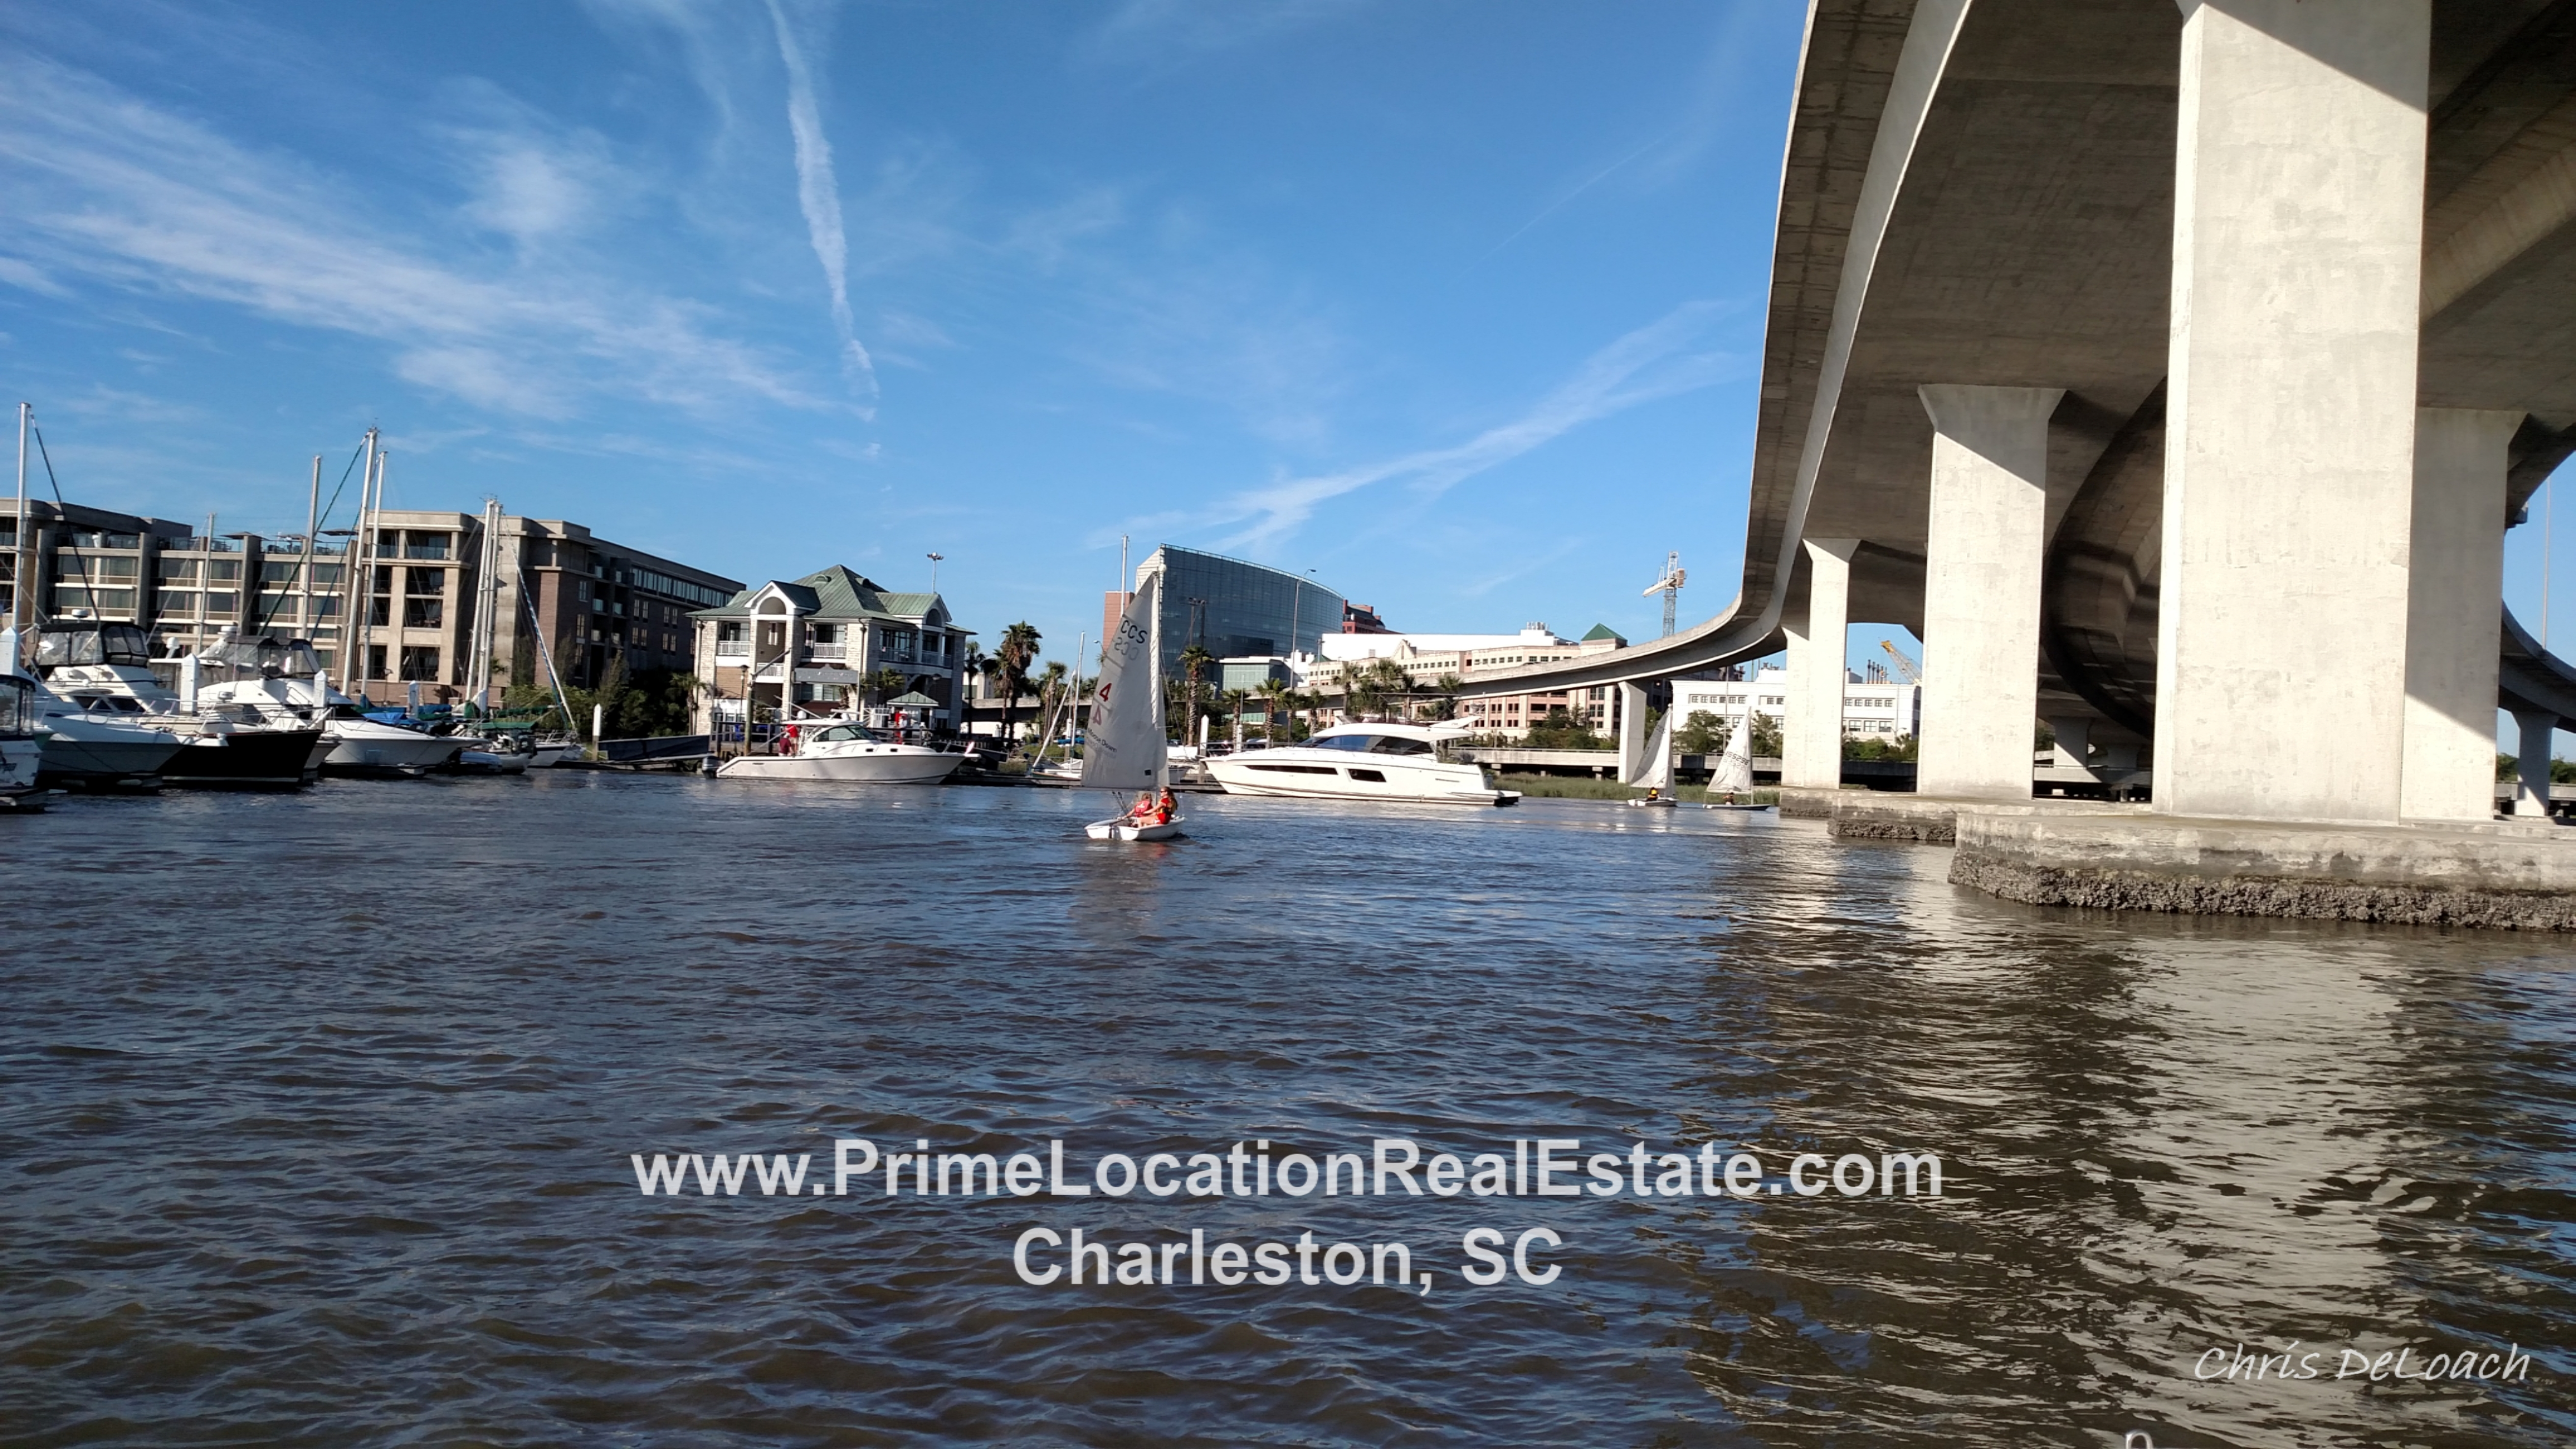 Charleston City Marina - Charleston Community Sailing